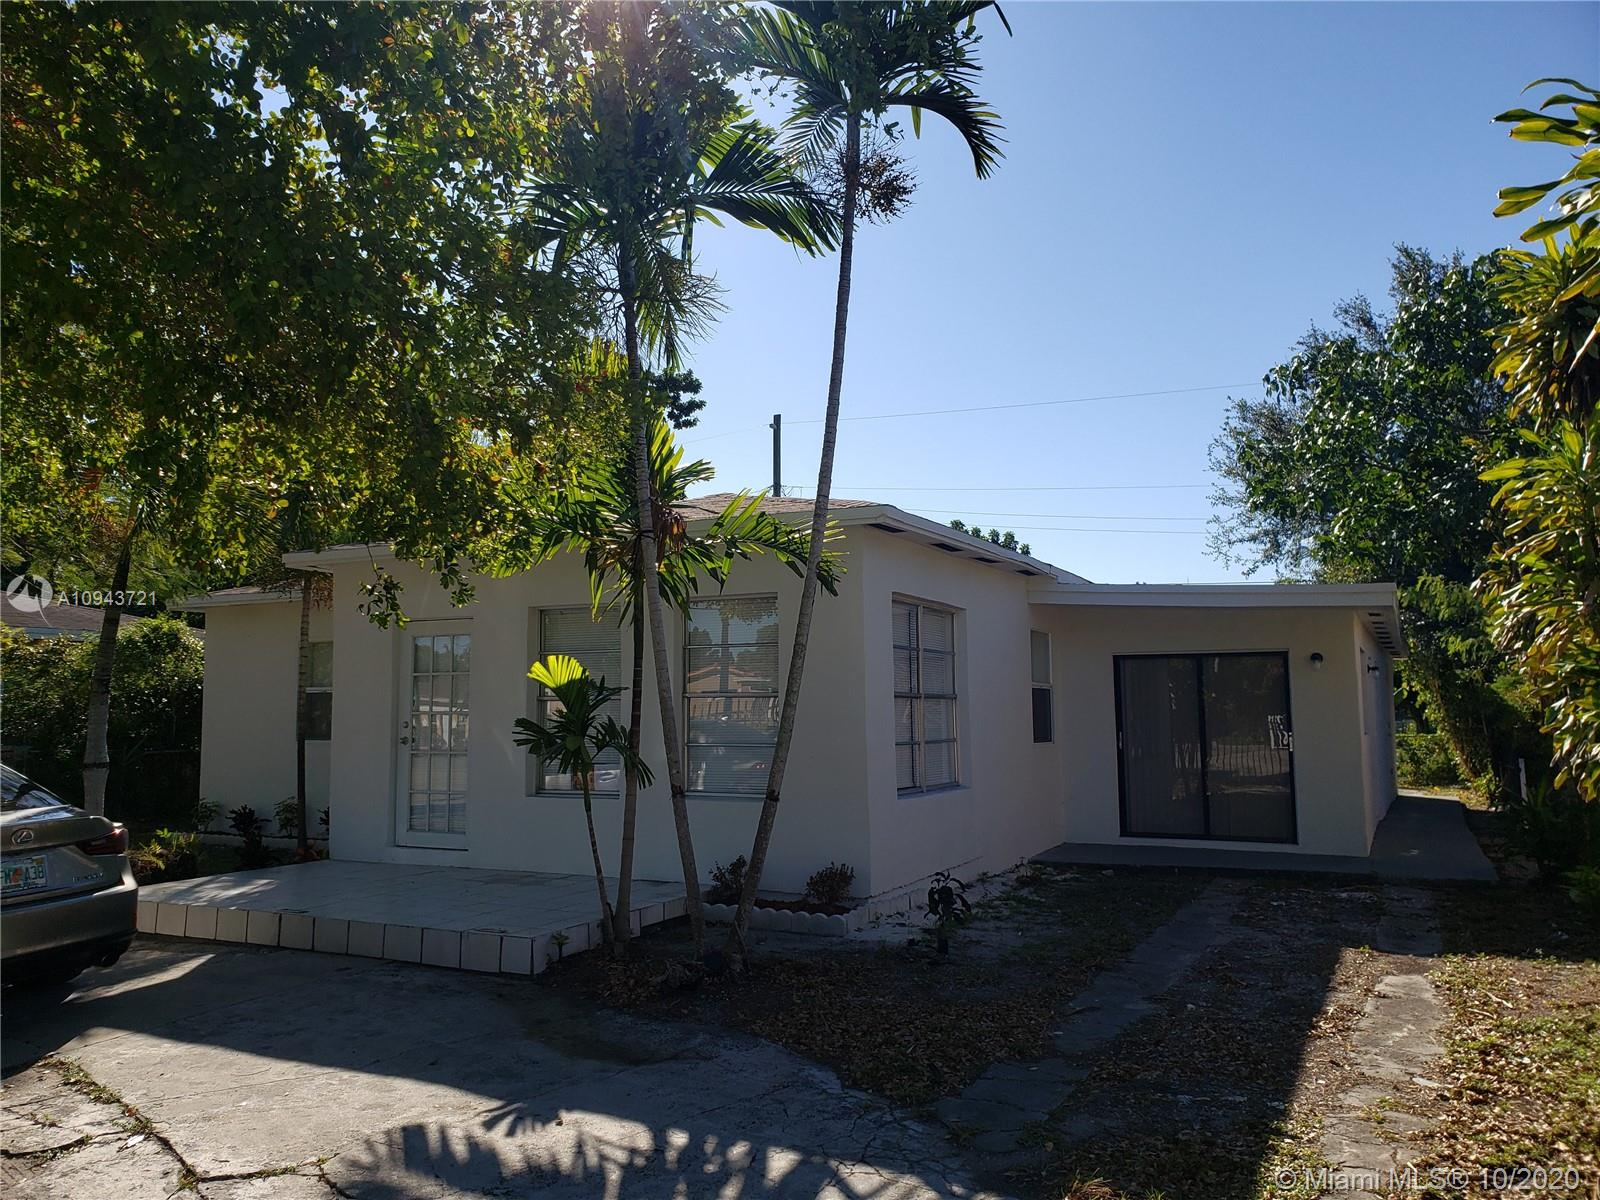 412 NW 103rd St  For Sale A10943721, FL